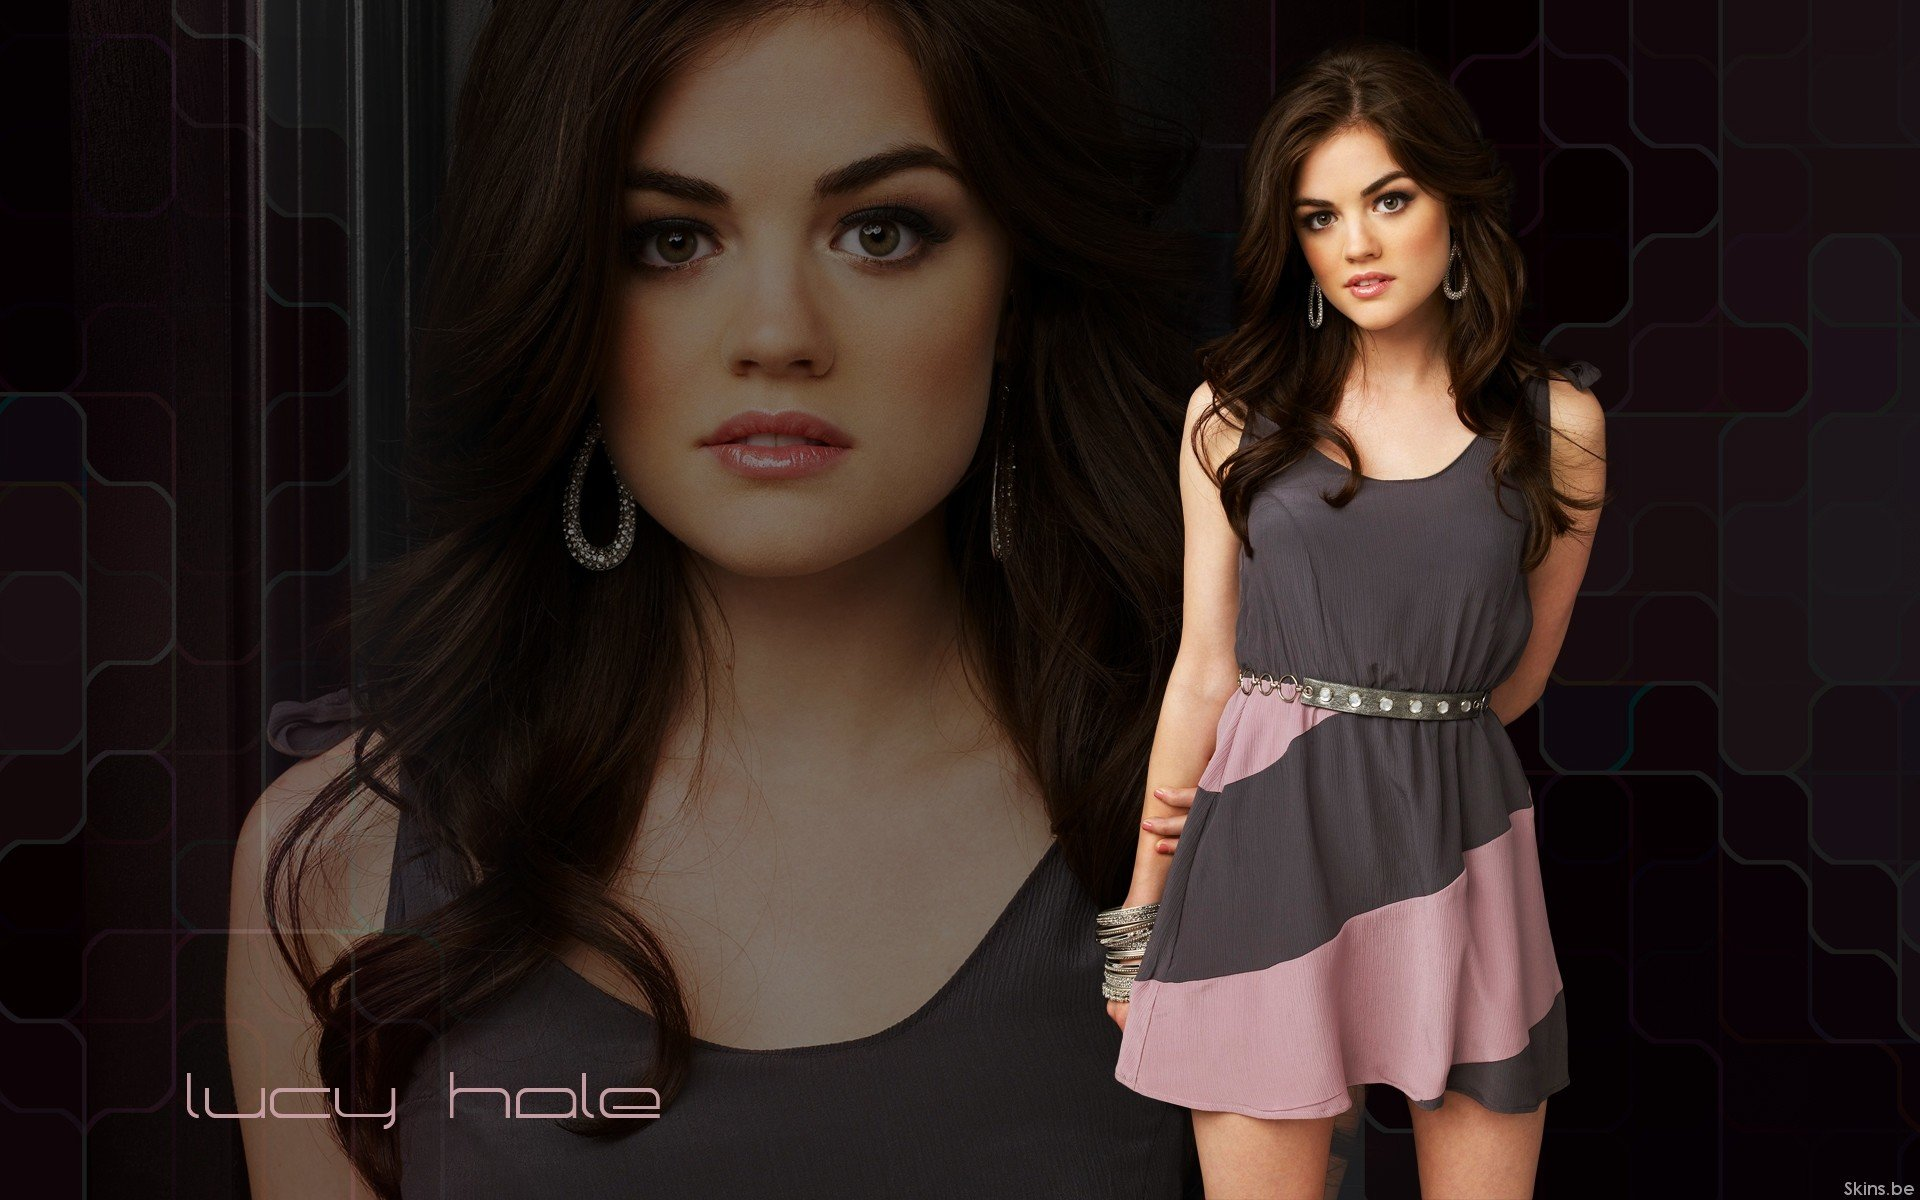 Download hd 1920x1200 Lucy Hale PC background ID:270593 for free